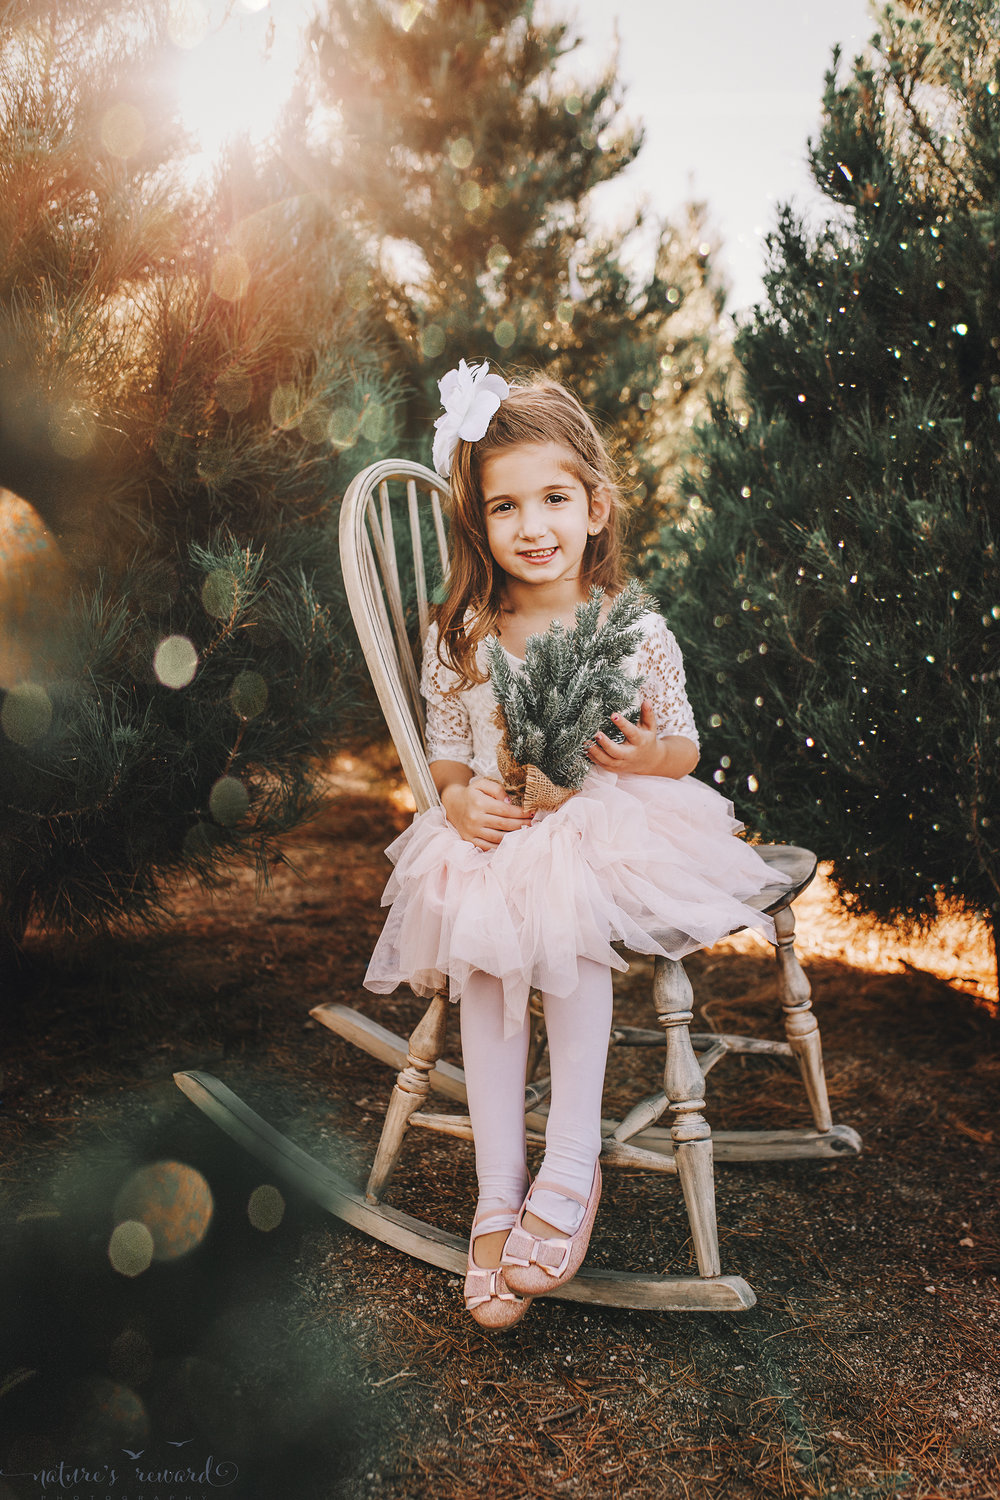 Sweet young girl -A Christmas tree farm portrait by Nature's Reward Photography